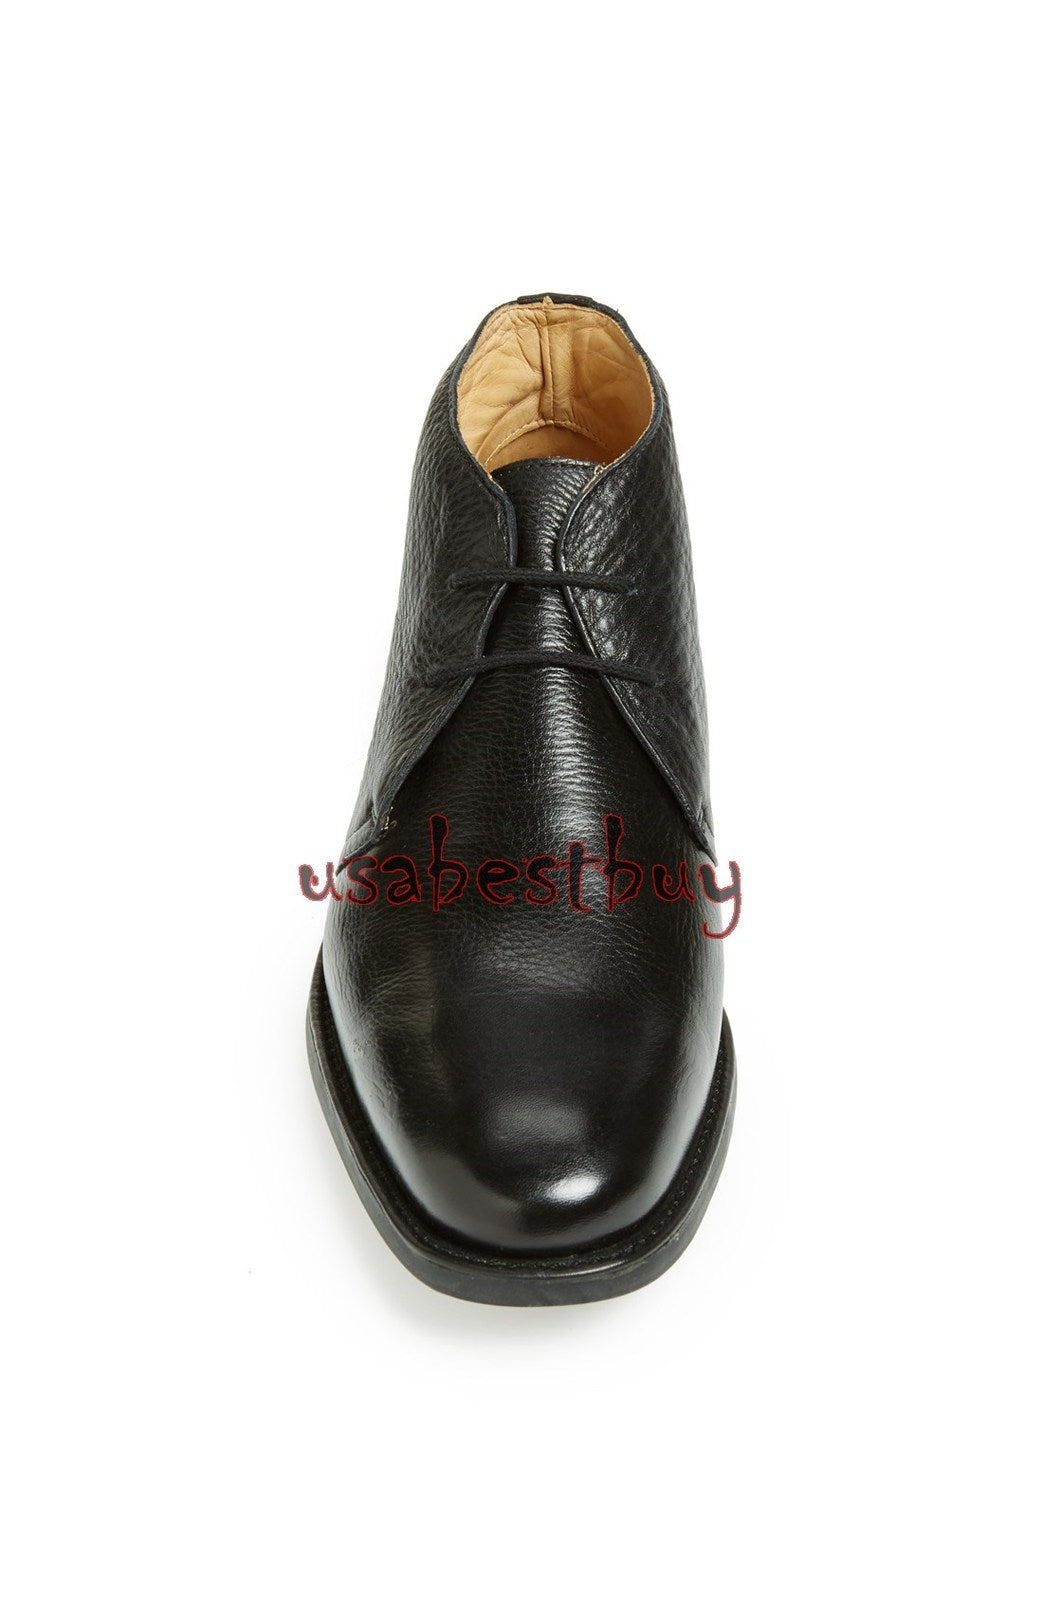 New Handmade Chukka Simple Style Black Leather Boots, Men real leather boots